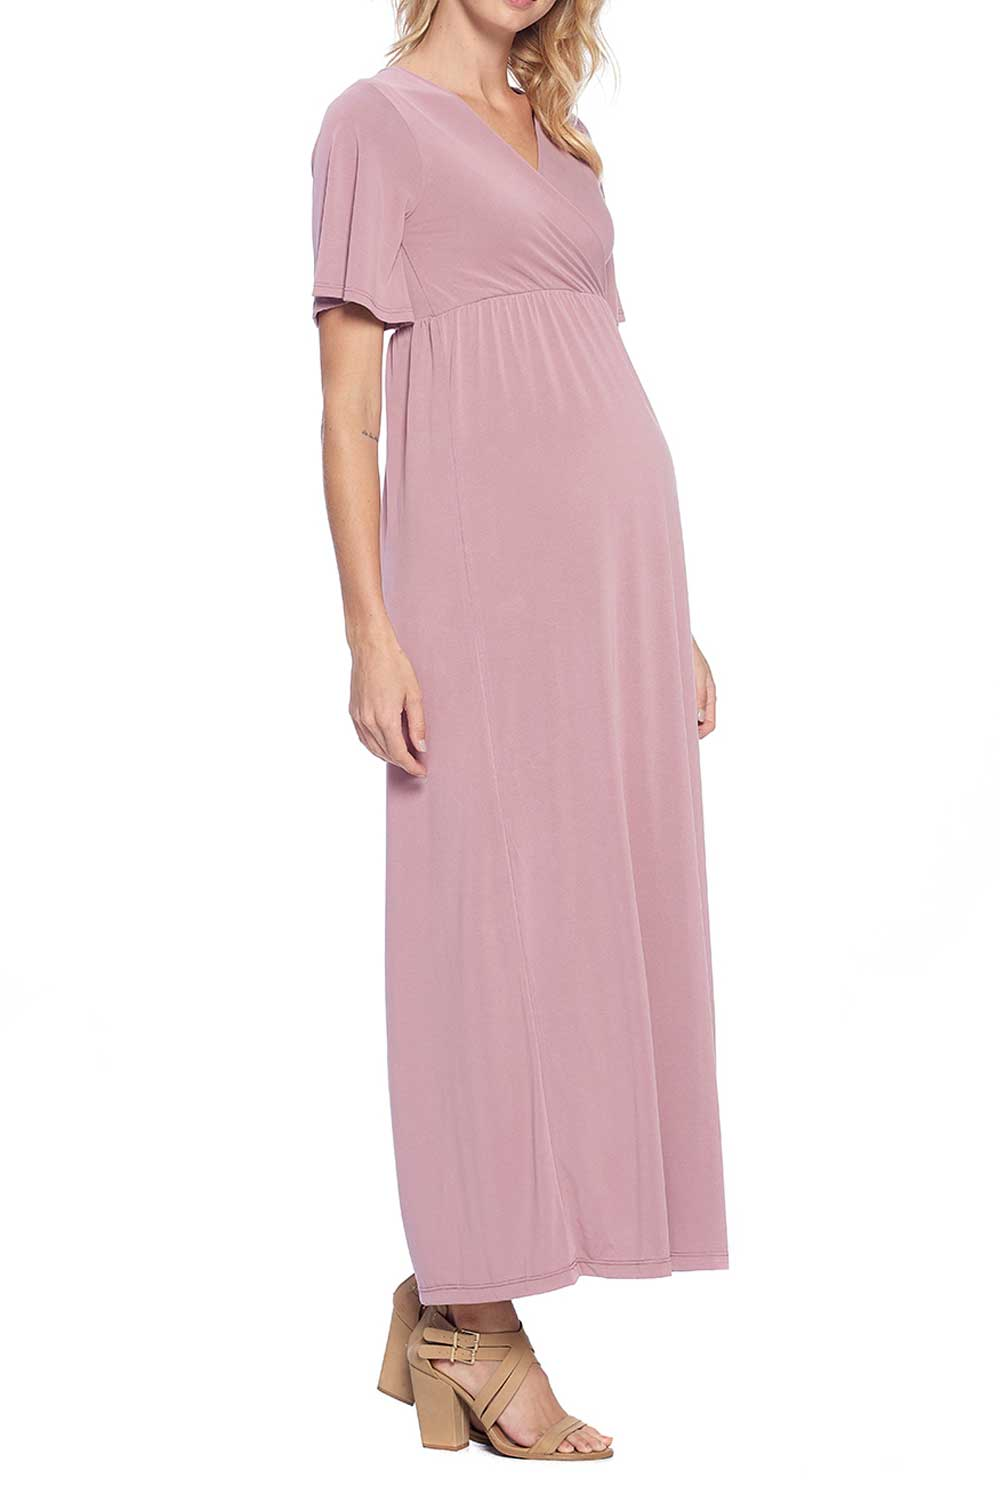 Maternity Soft Vegan Silk Modal Comfortable Kimono Maxi Dress